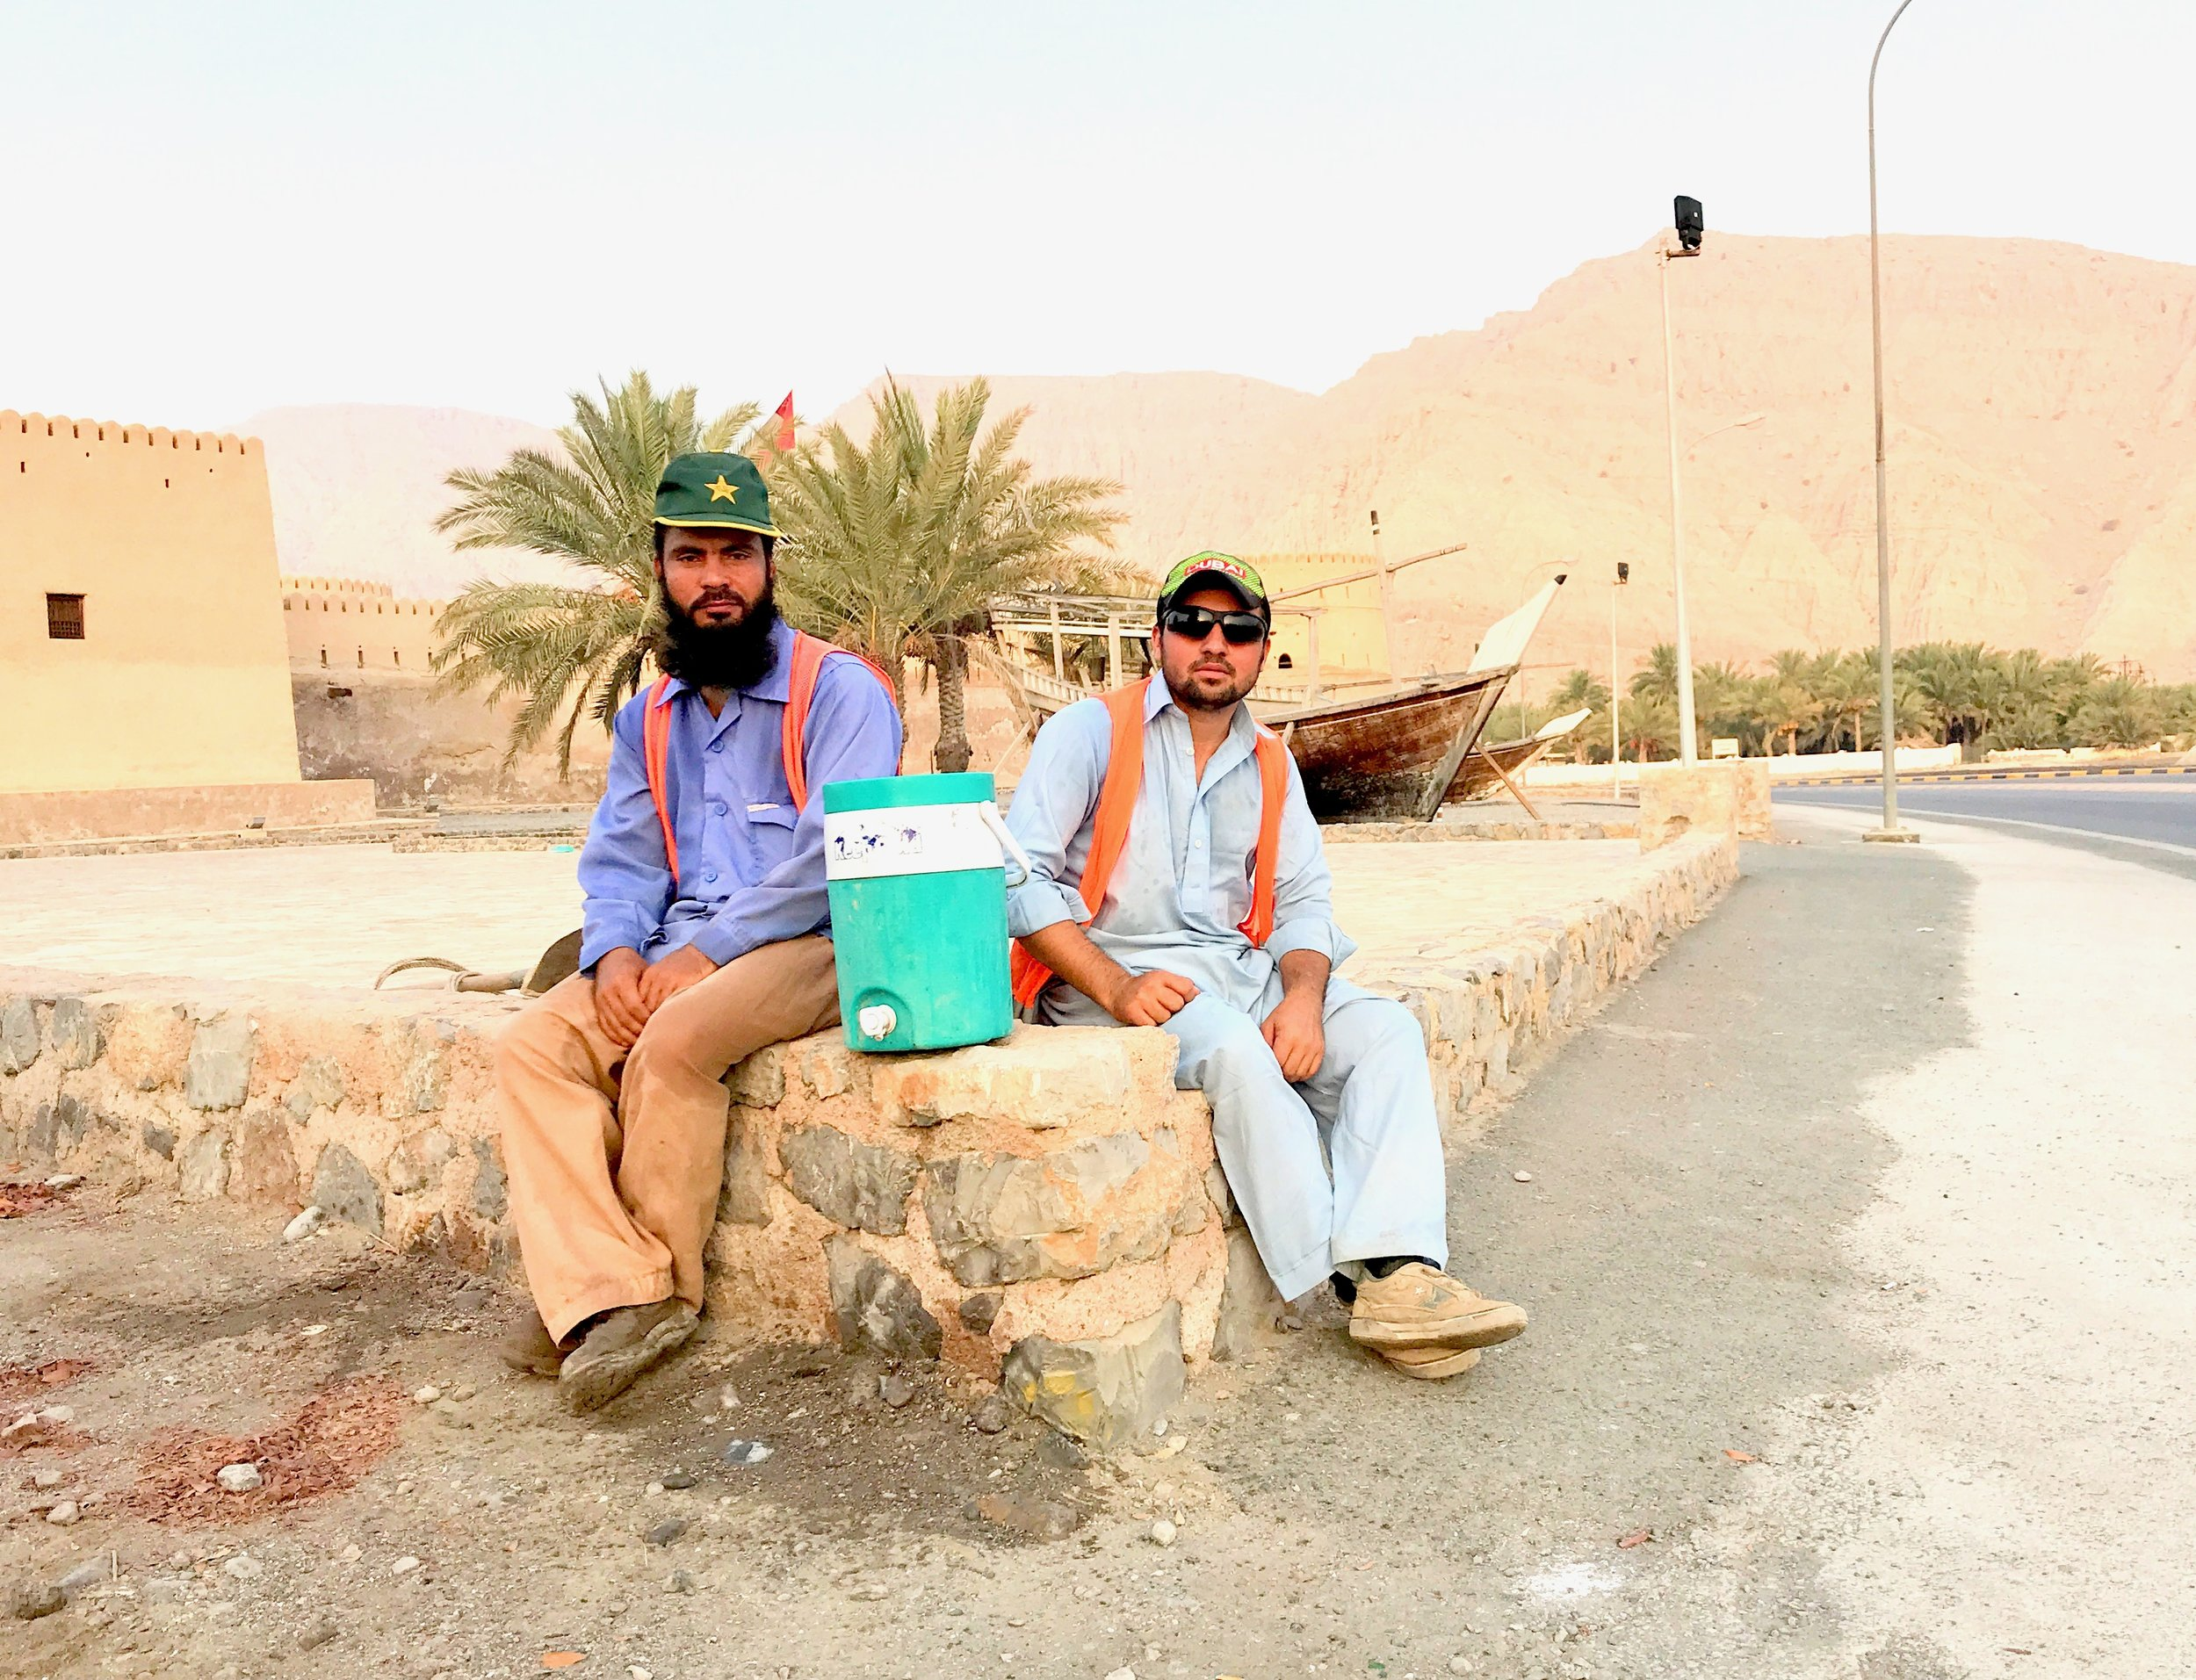 Workers taking a break in Khasab, Oman.